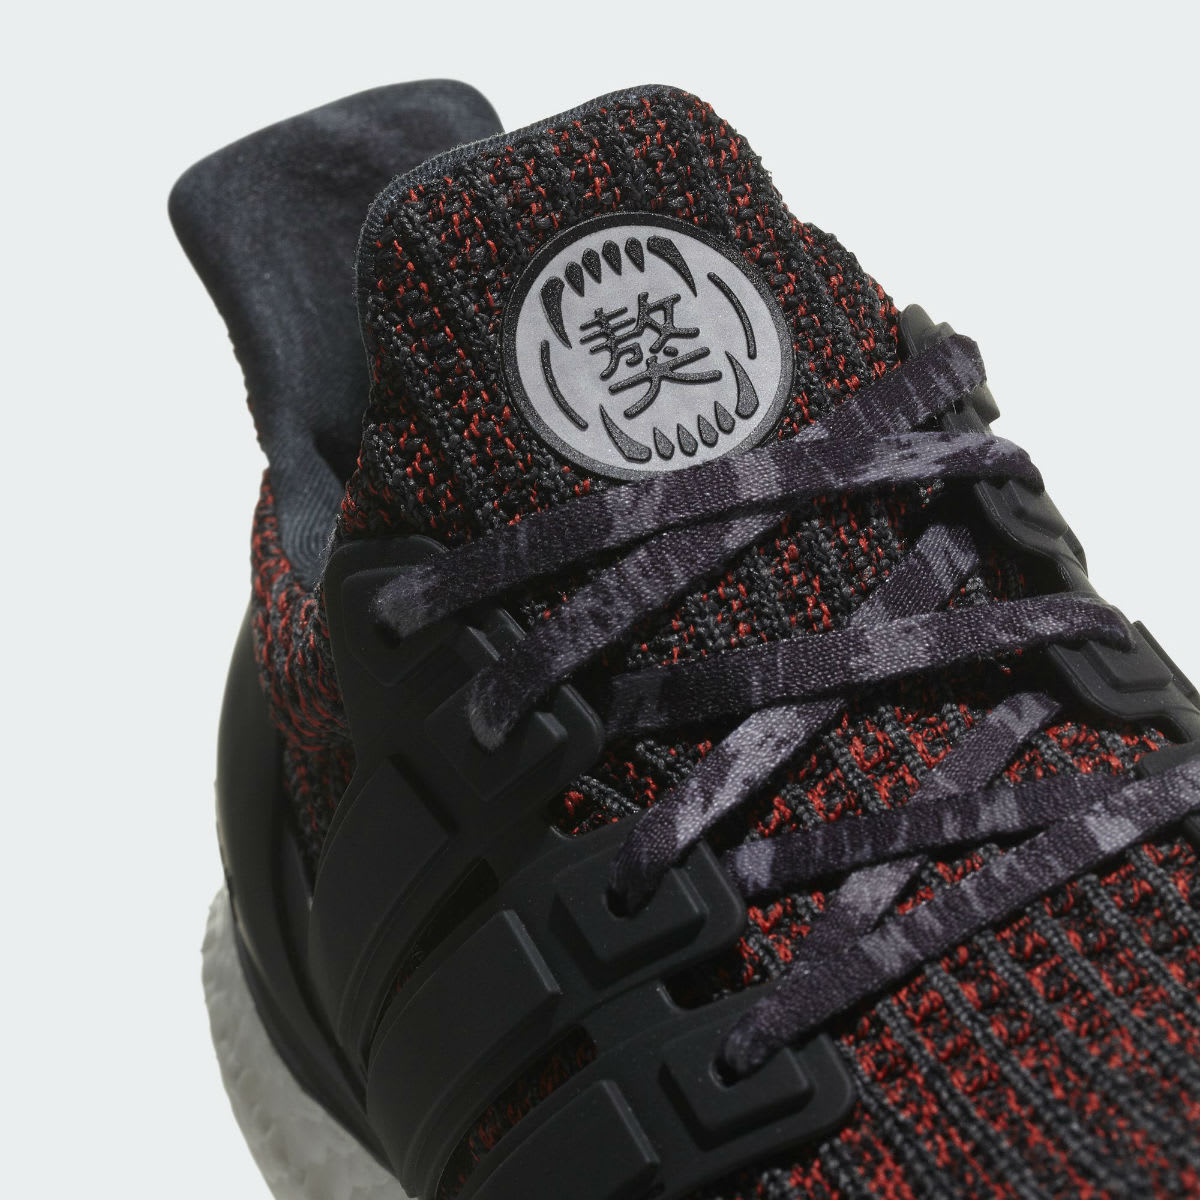 7ffe11da25e41 ... authentic adidas ultra boost 4.0 chinese new year release date bb6173  tongue 68a89 4fdf0 cheap adidas ultra boost 4.0 cny ...